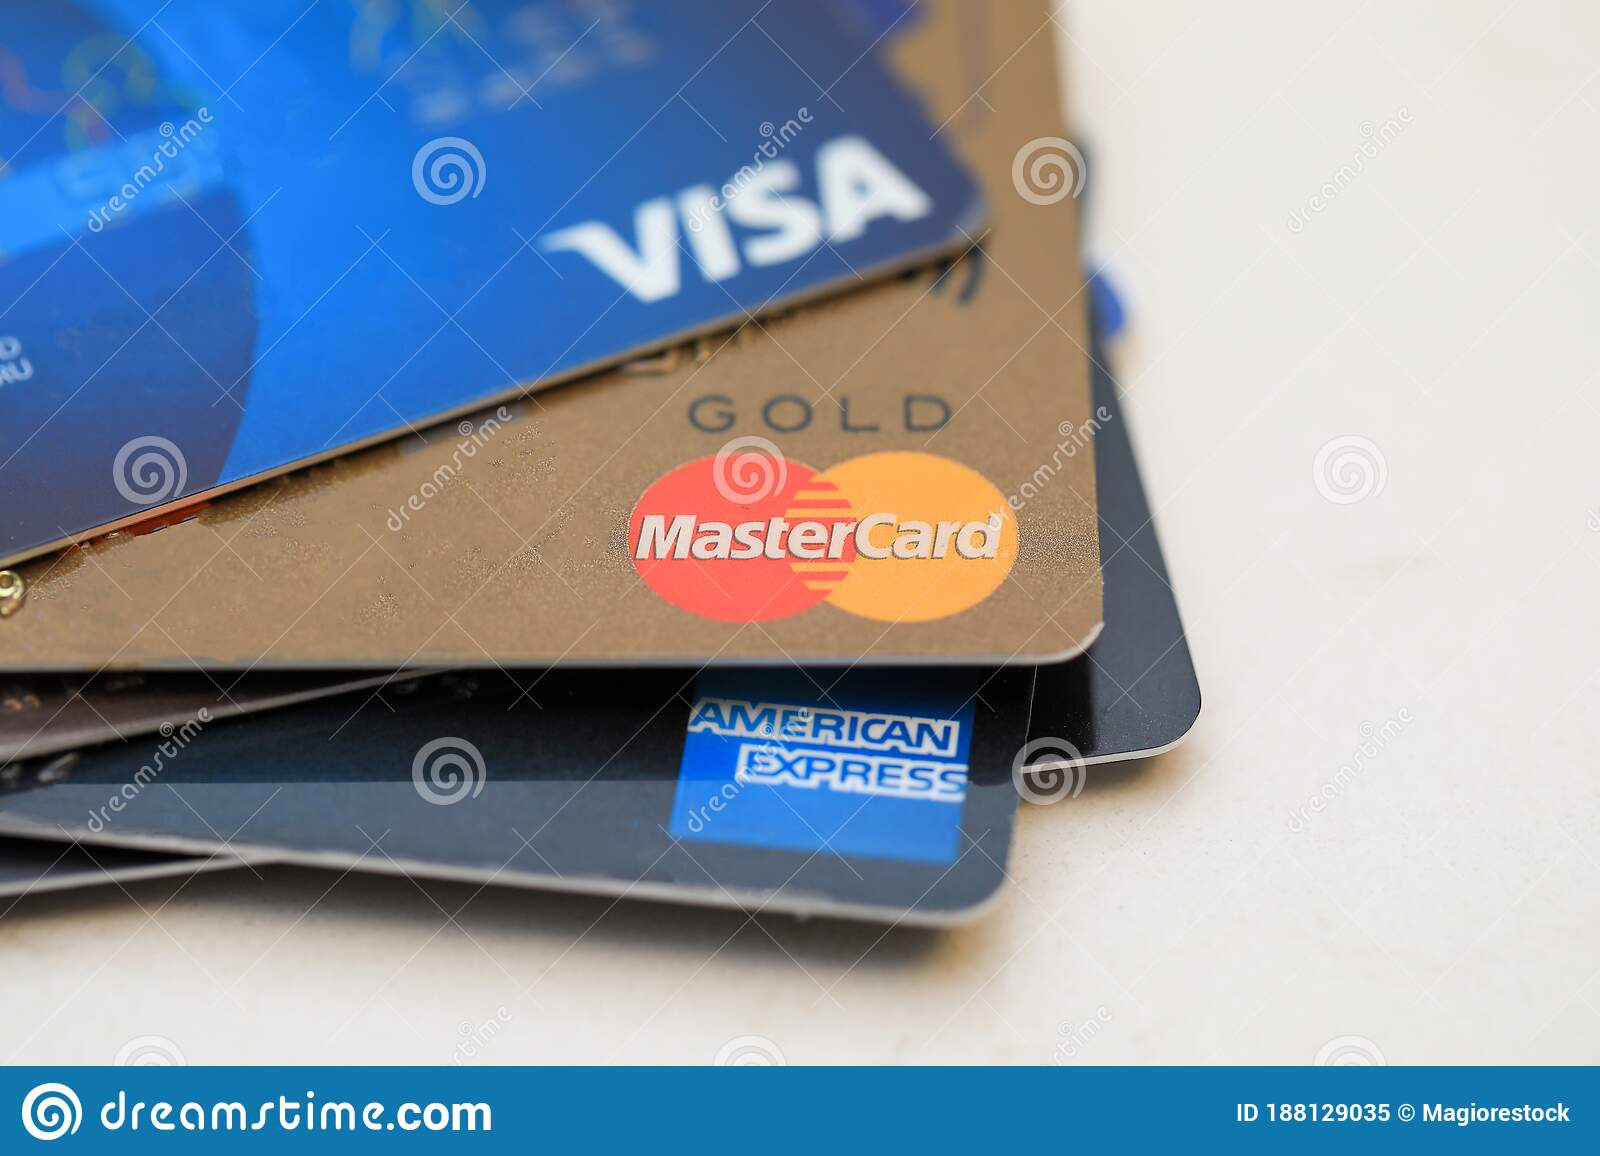 Combined, these three companies account for close to 40% of the nation's outstanding credit card debt. Tel Aviv Israel January 26 2020 Credit Cards Major Brands Visa Mastercard And American Express Editorial Image Image Of Card Editorial 188129035